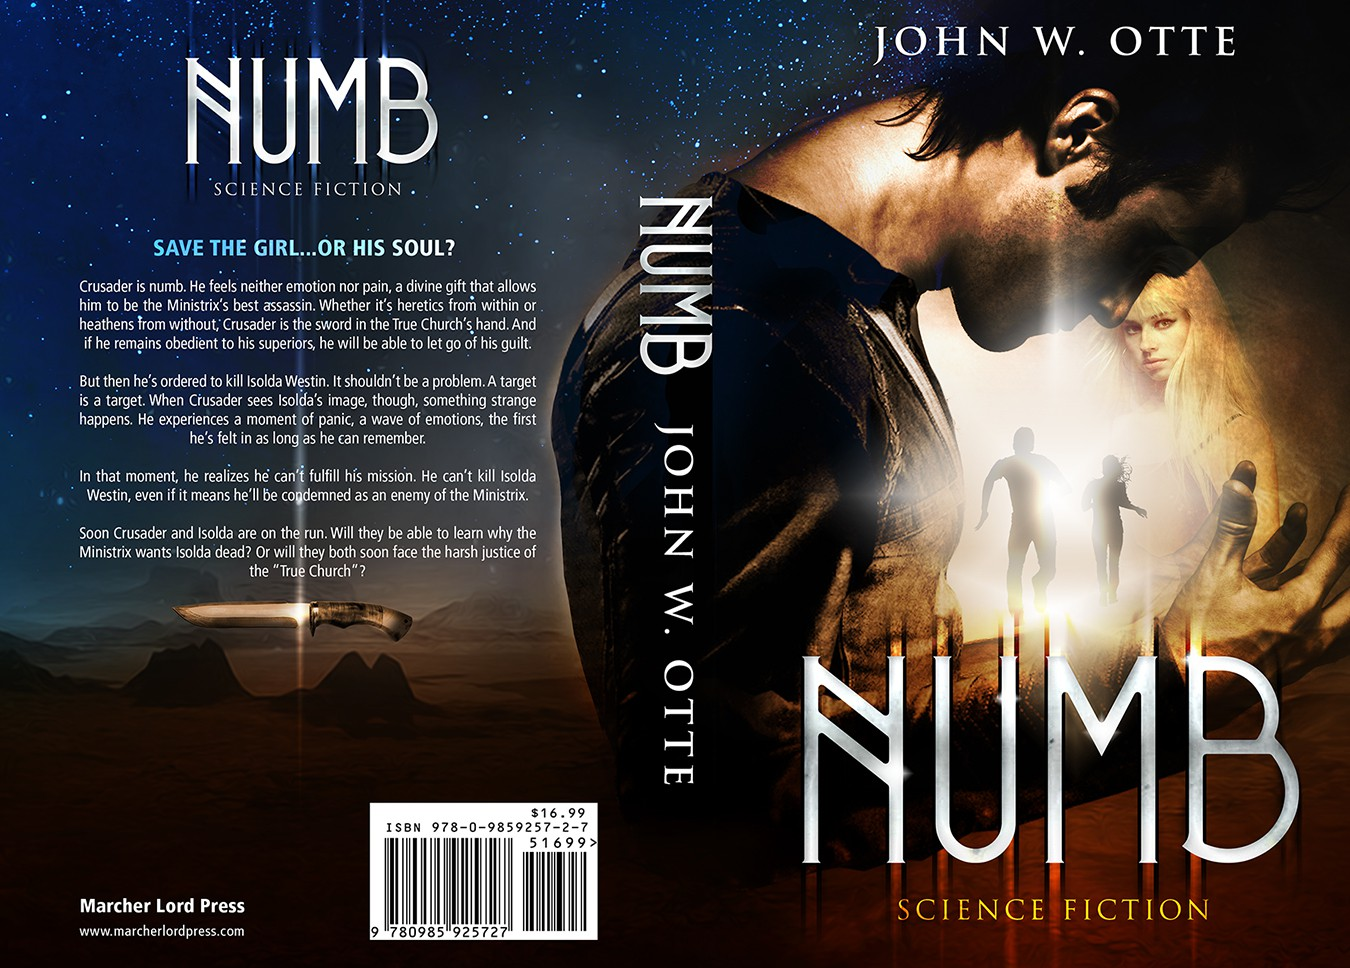 Numb, an explosive science fiction thriller, needs your most creative cover